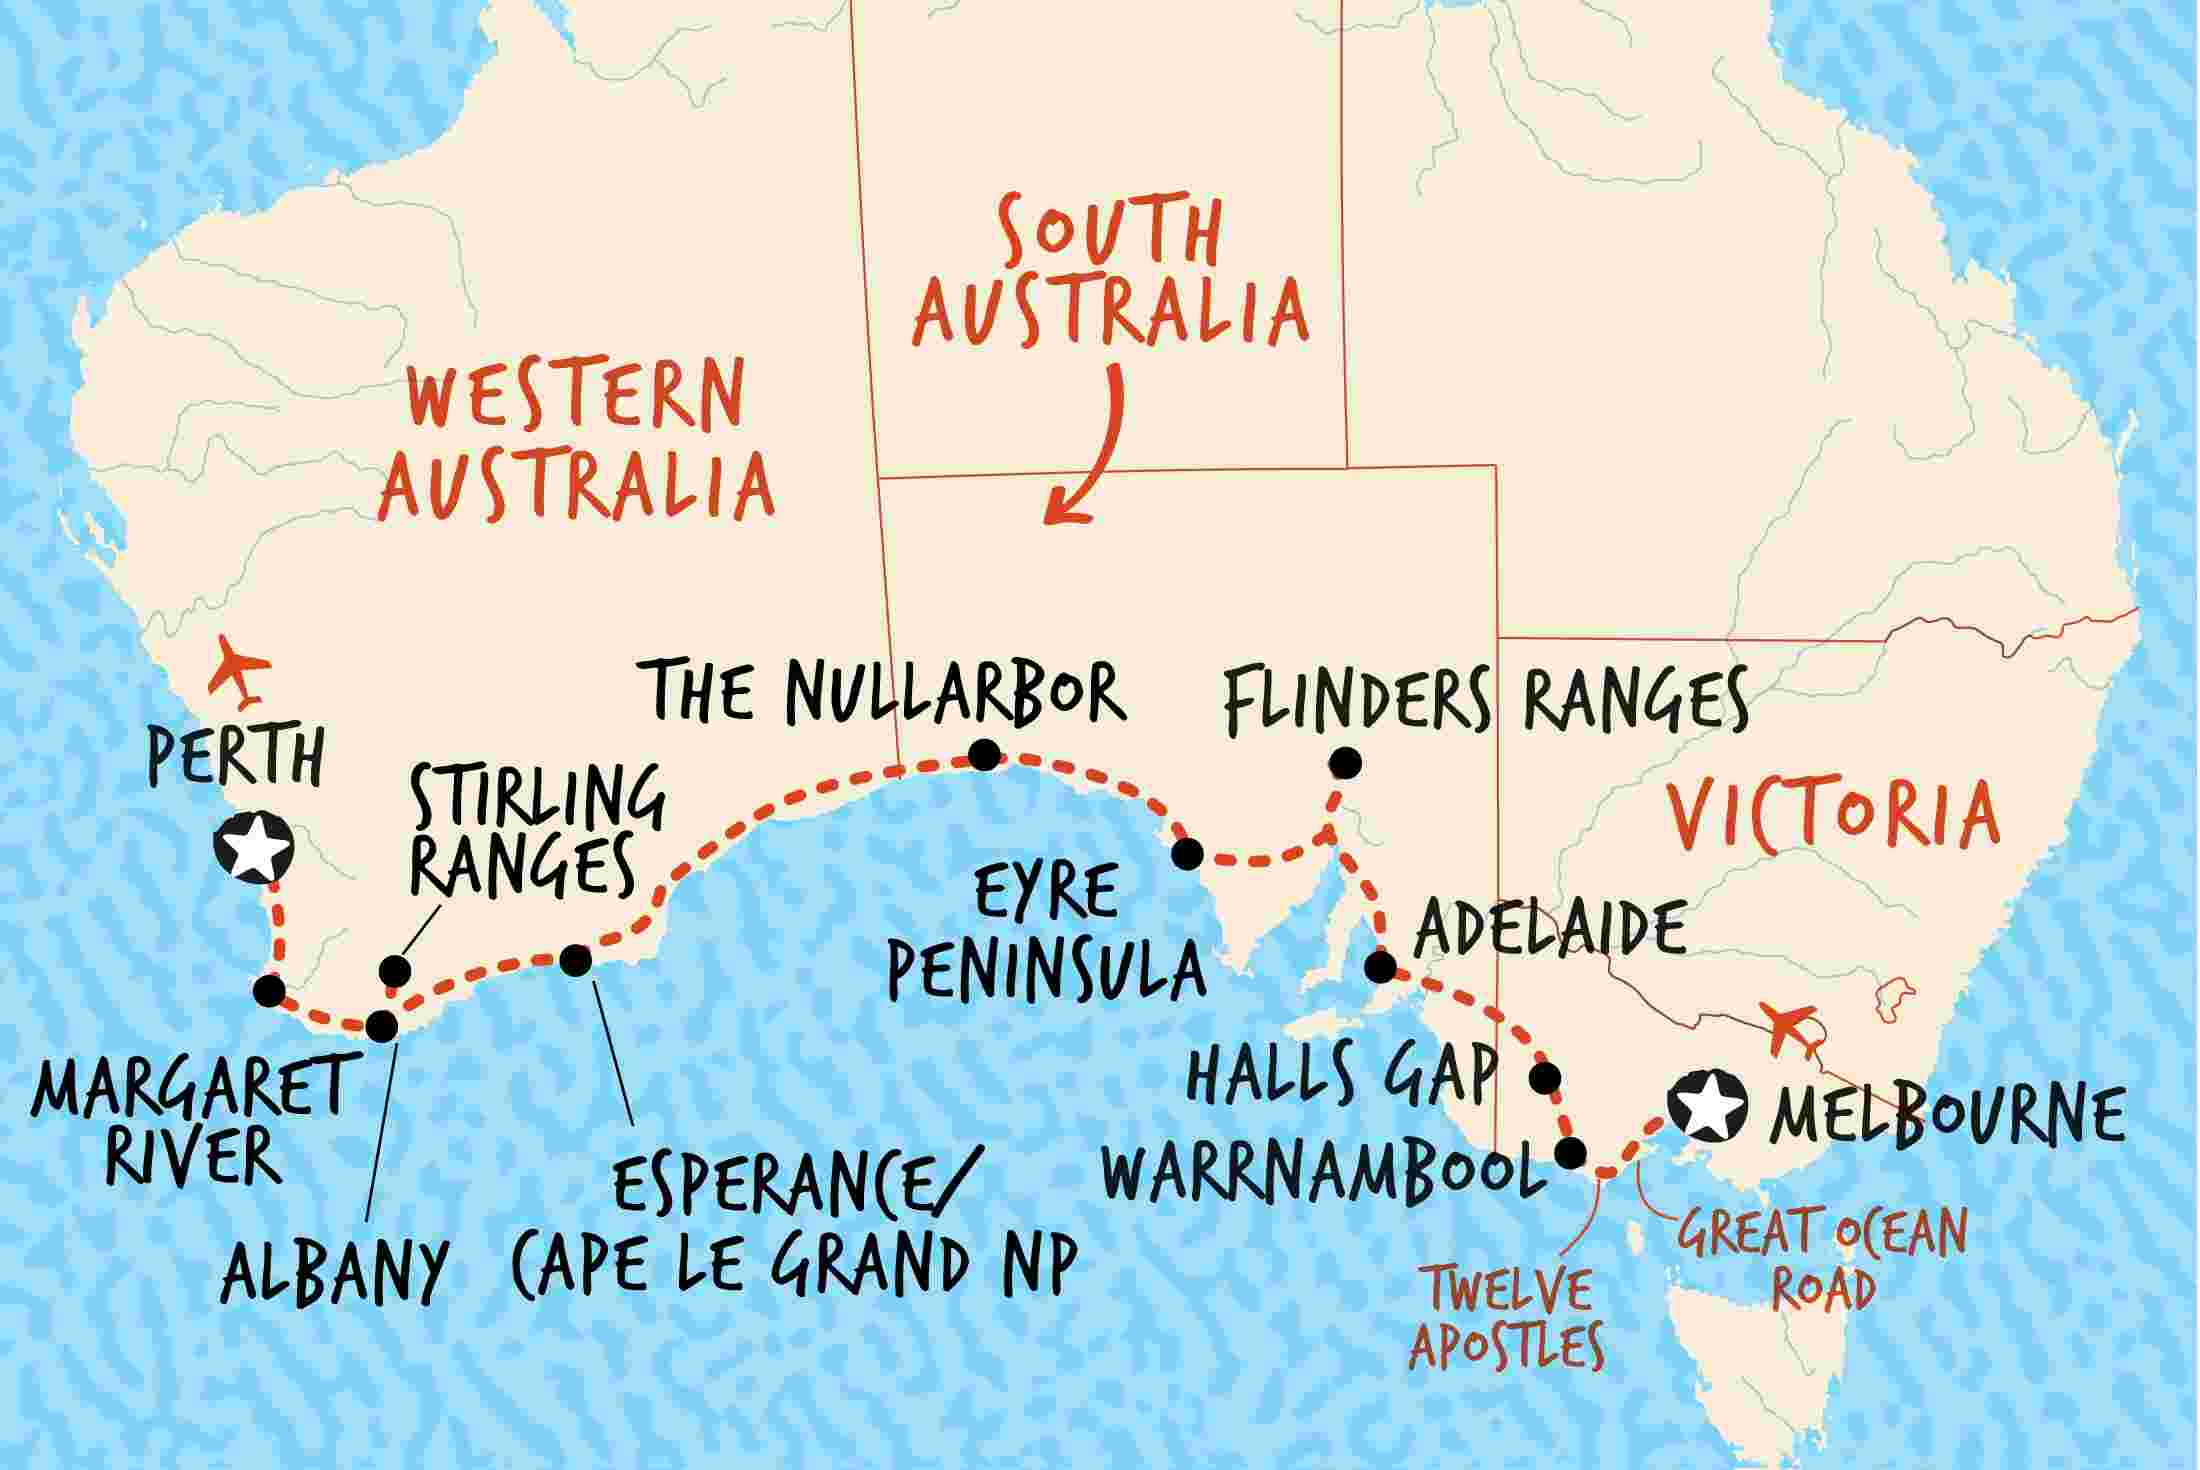 Map Of Australia Showing Perth.Best Perth Tours Travel 2019 Adventure Tours Australia